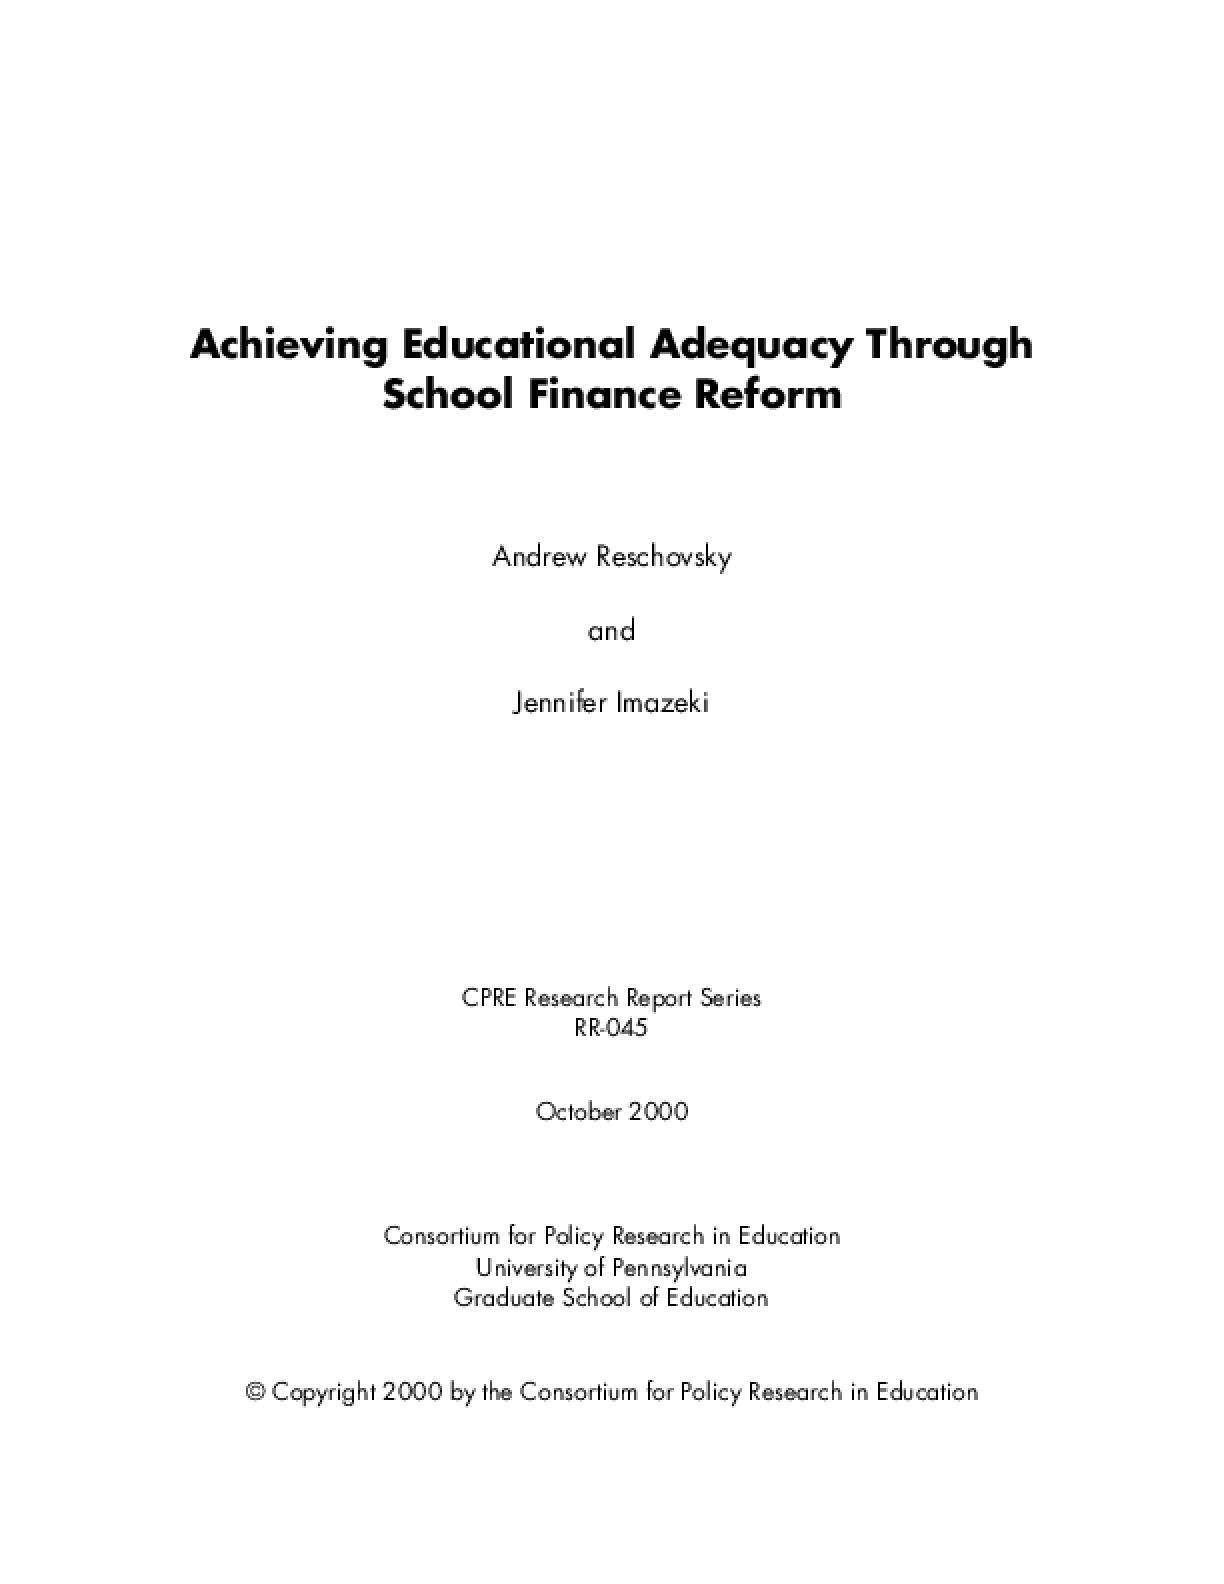 Achieving Educational Adequacy Through School Finance Reform